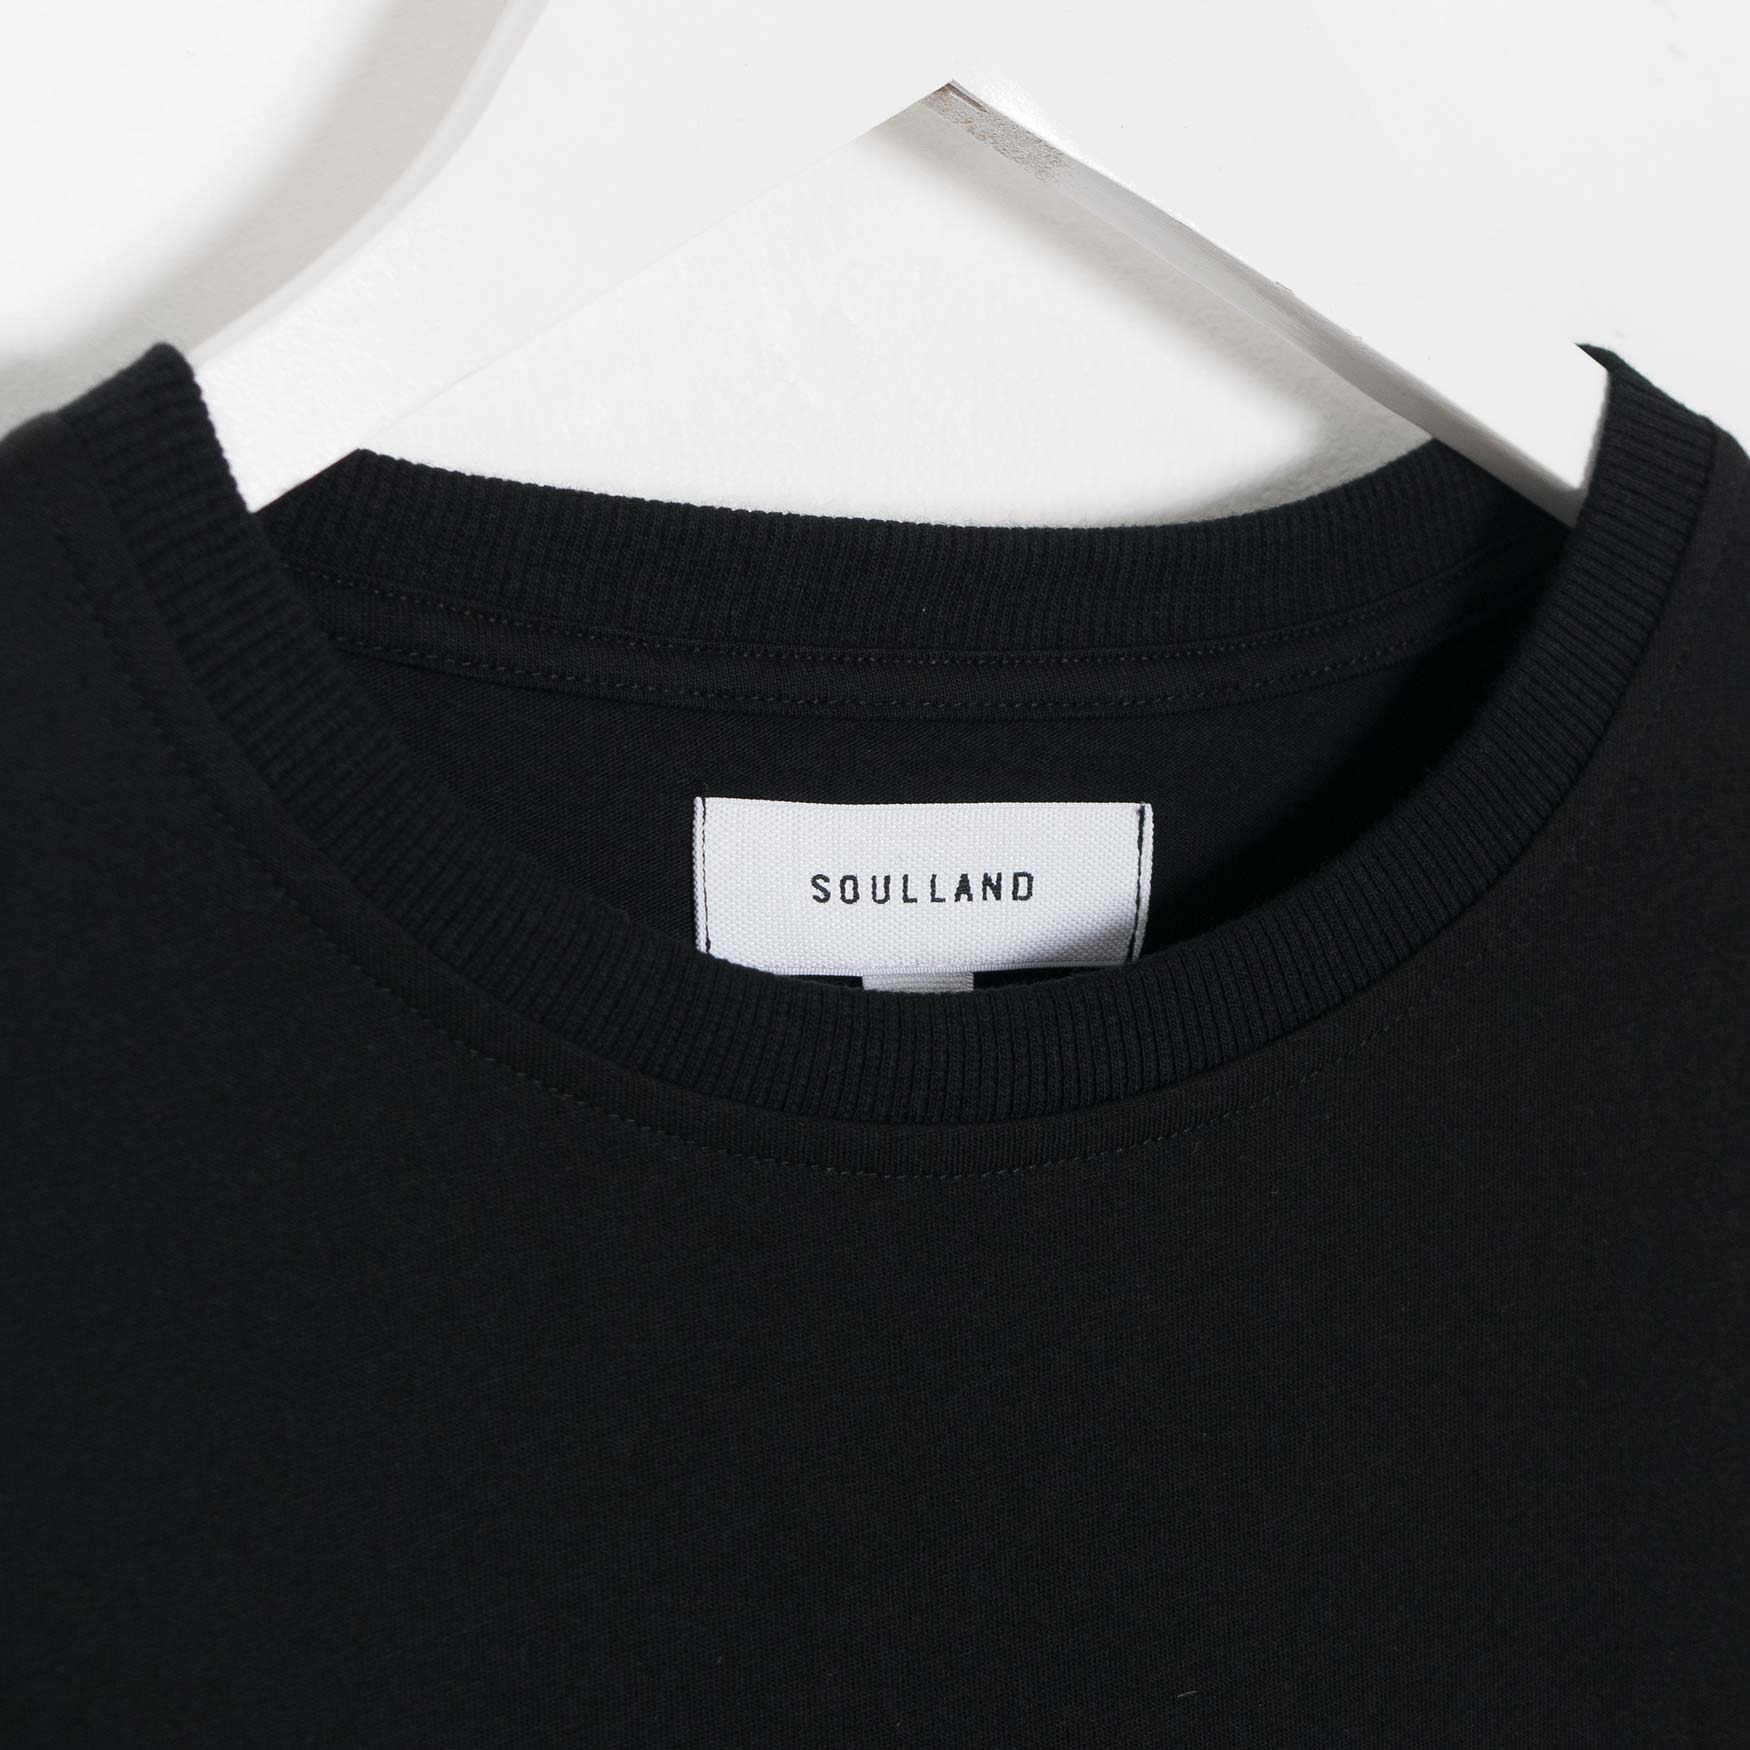 Soulland Norgaard T-Shirt - Black  - CARTOCON